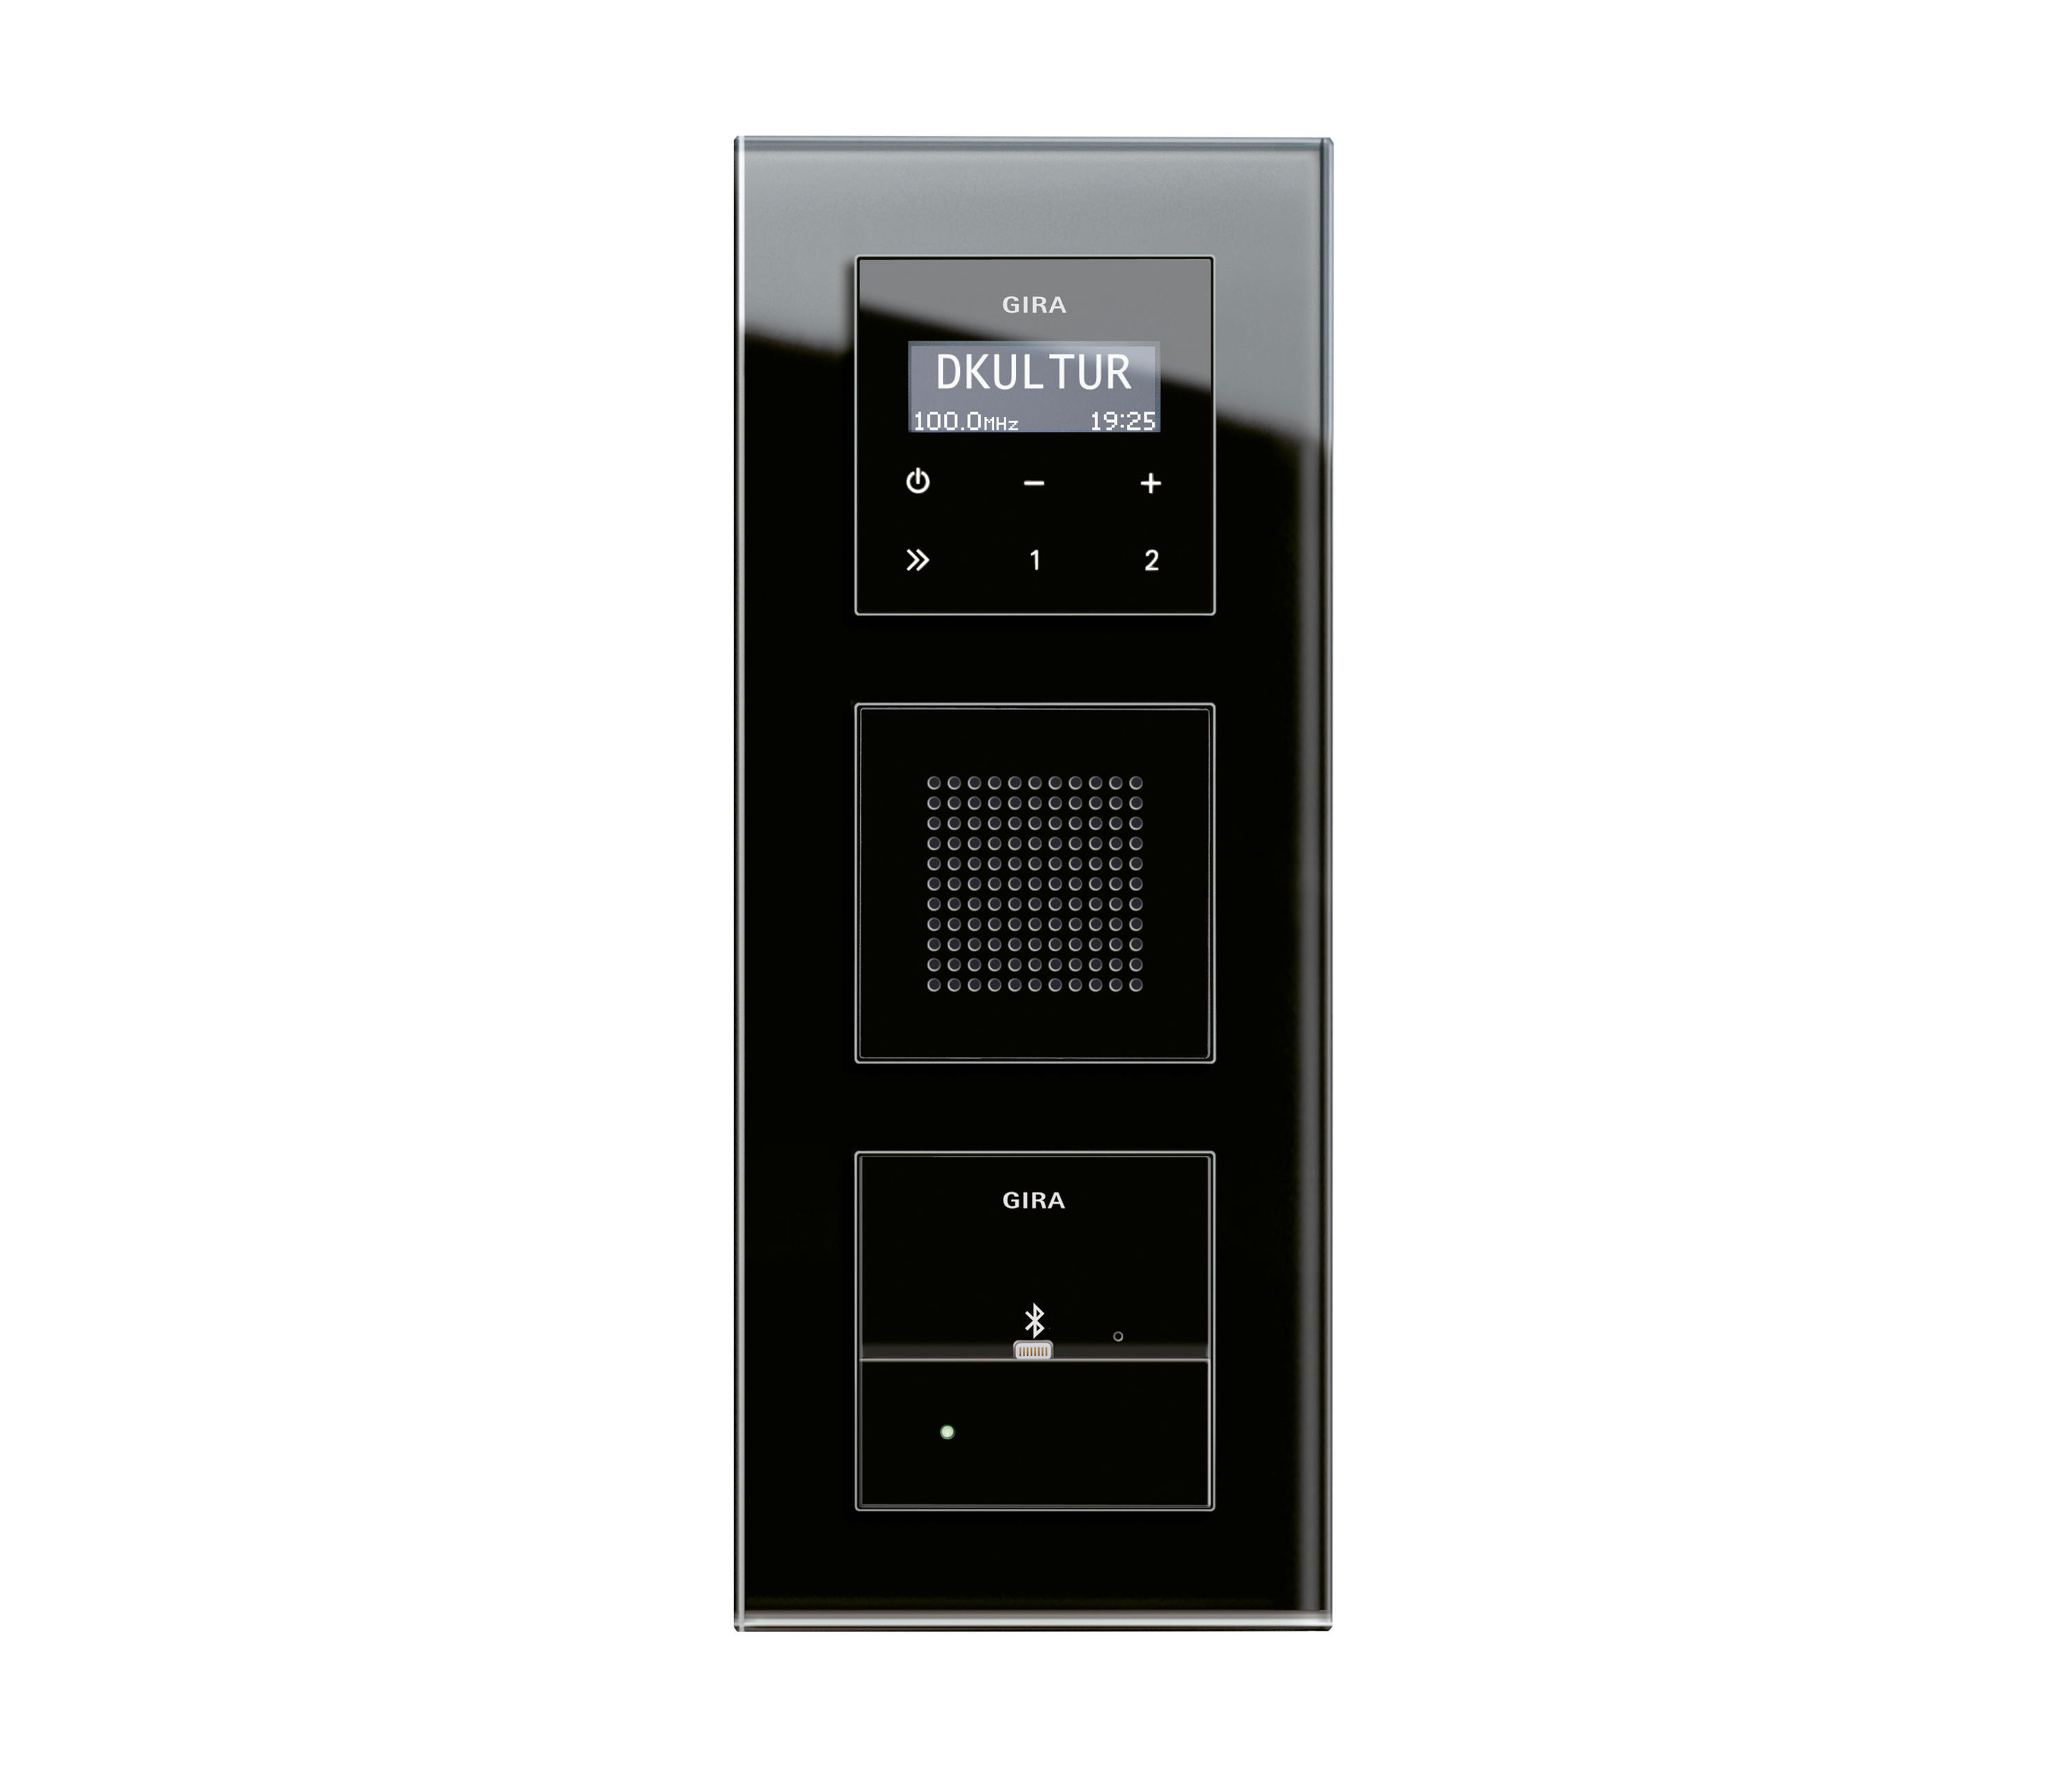 esprit glas dockingstation radiosysteme von gira. Black Bedroom Furniture Sets. Home Design Ideas